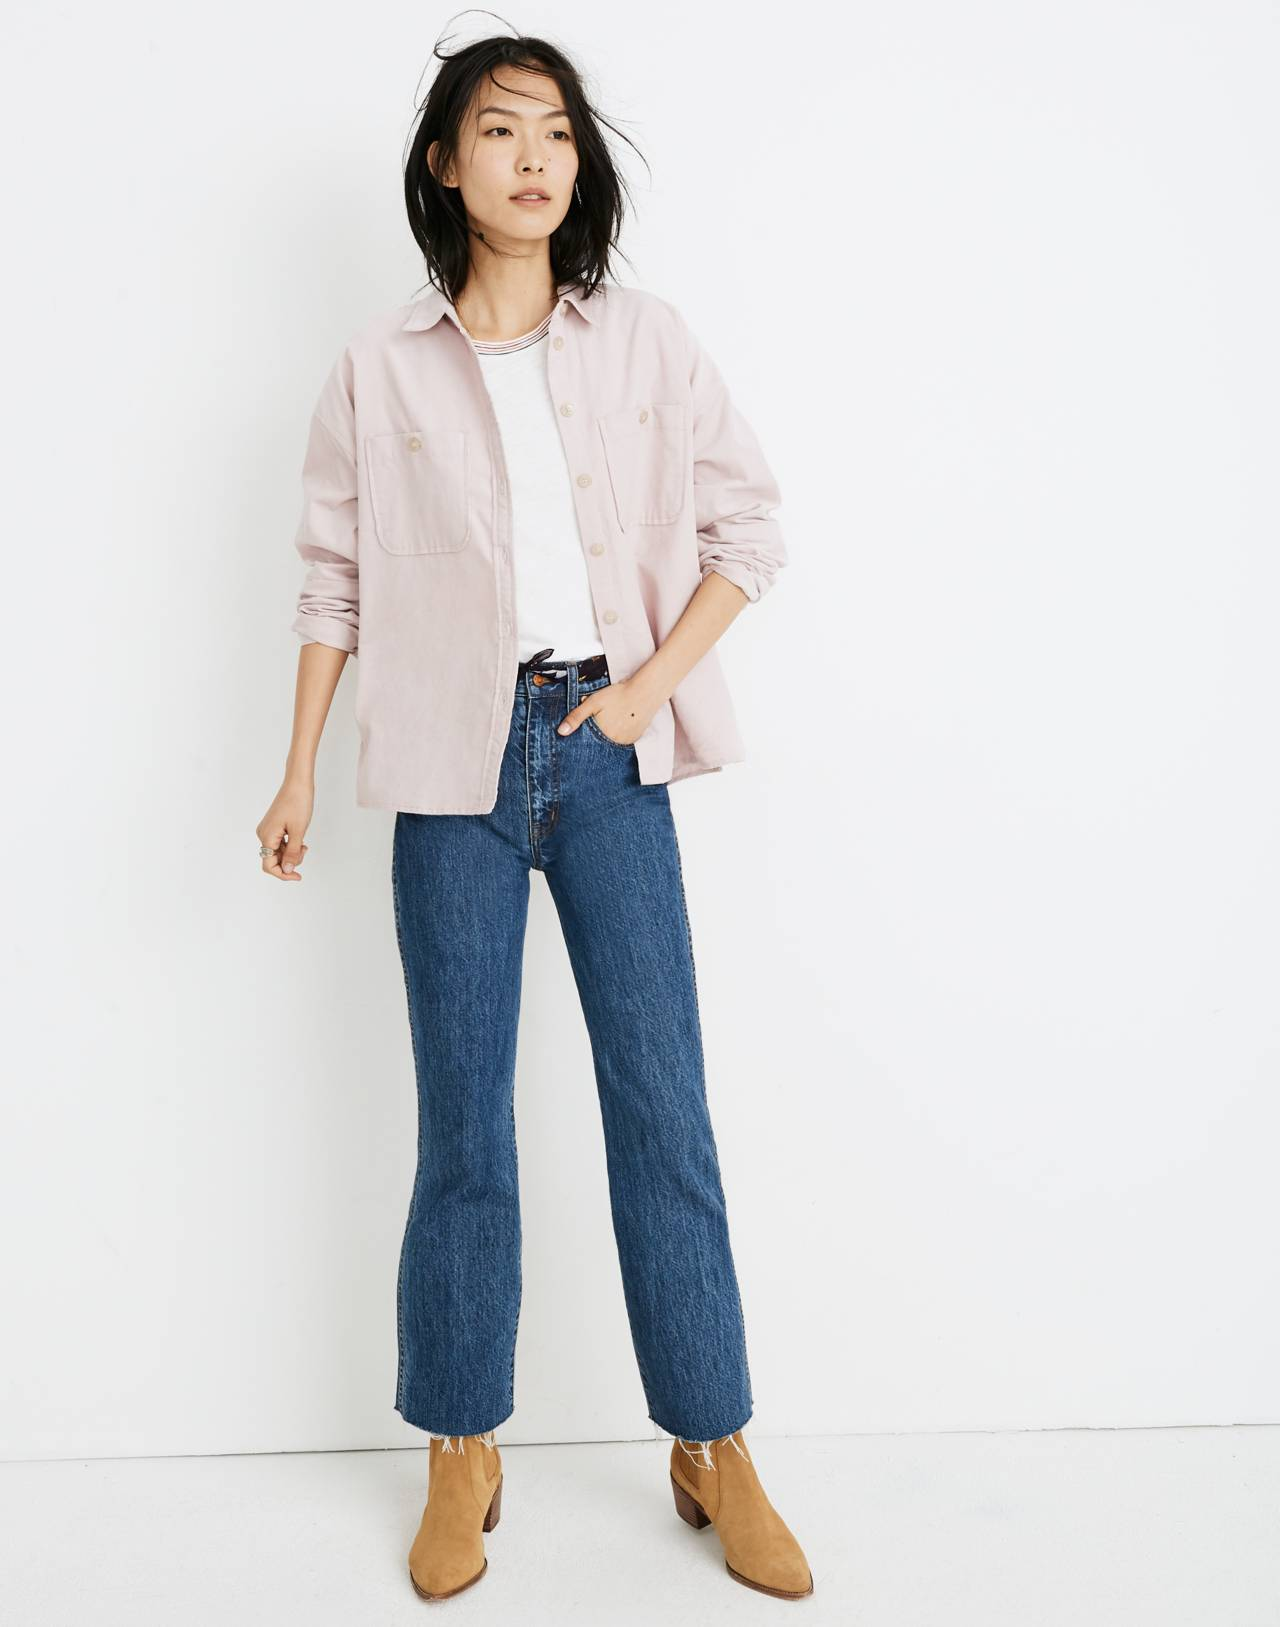 Corduroy Shirt-Jacket in wisteria dove image 2